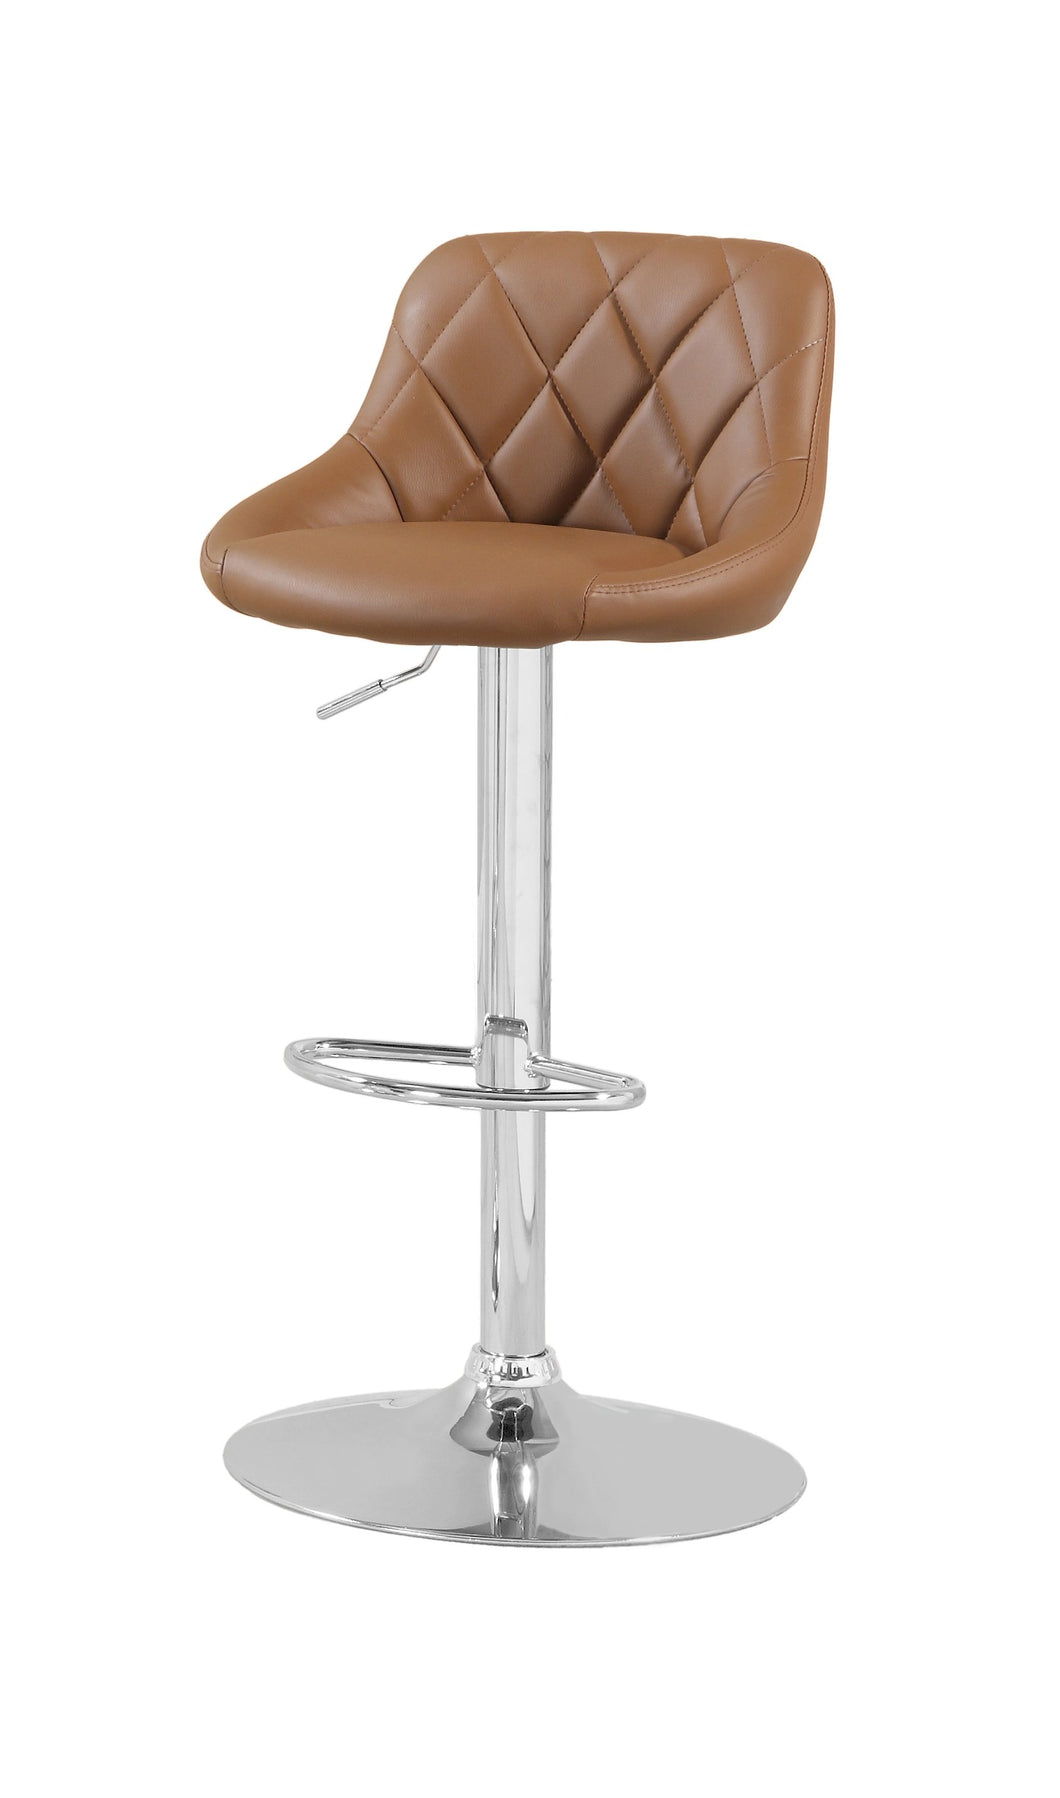 Rolly Contemporary Tufted Leatherette Swivel Bar Stool